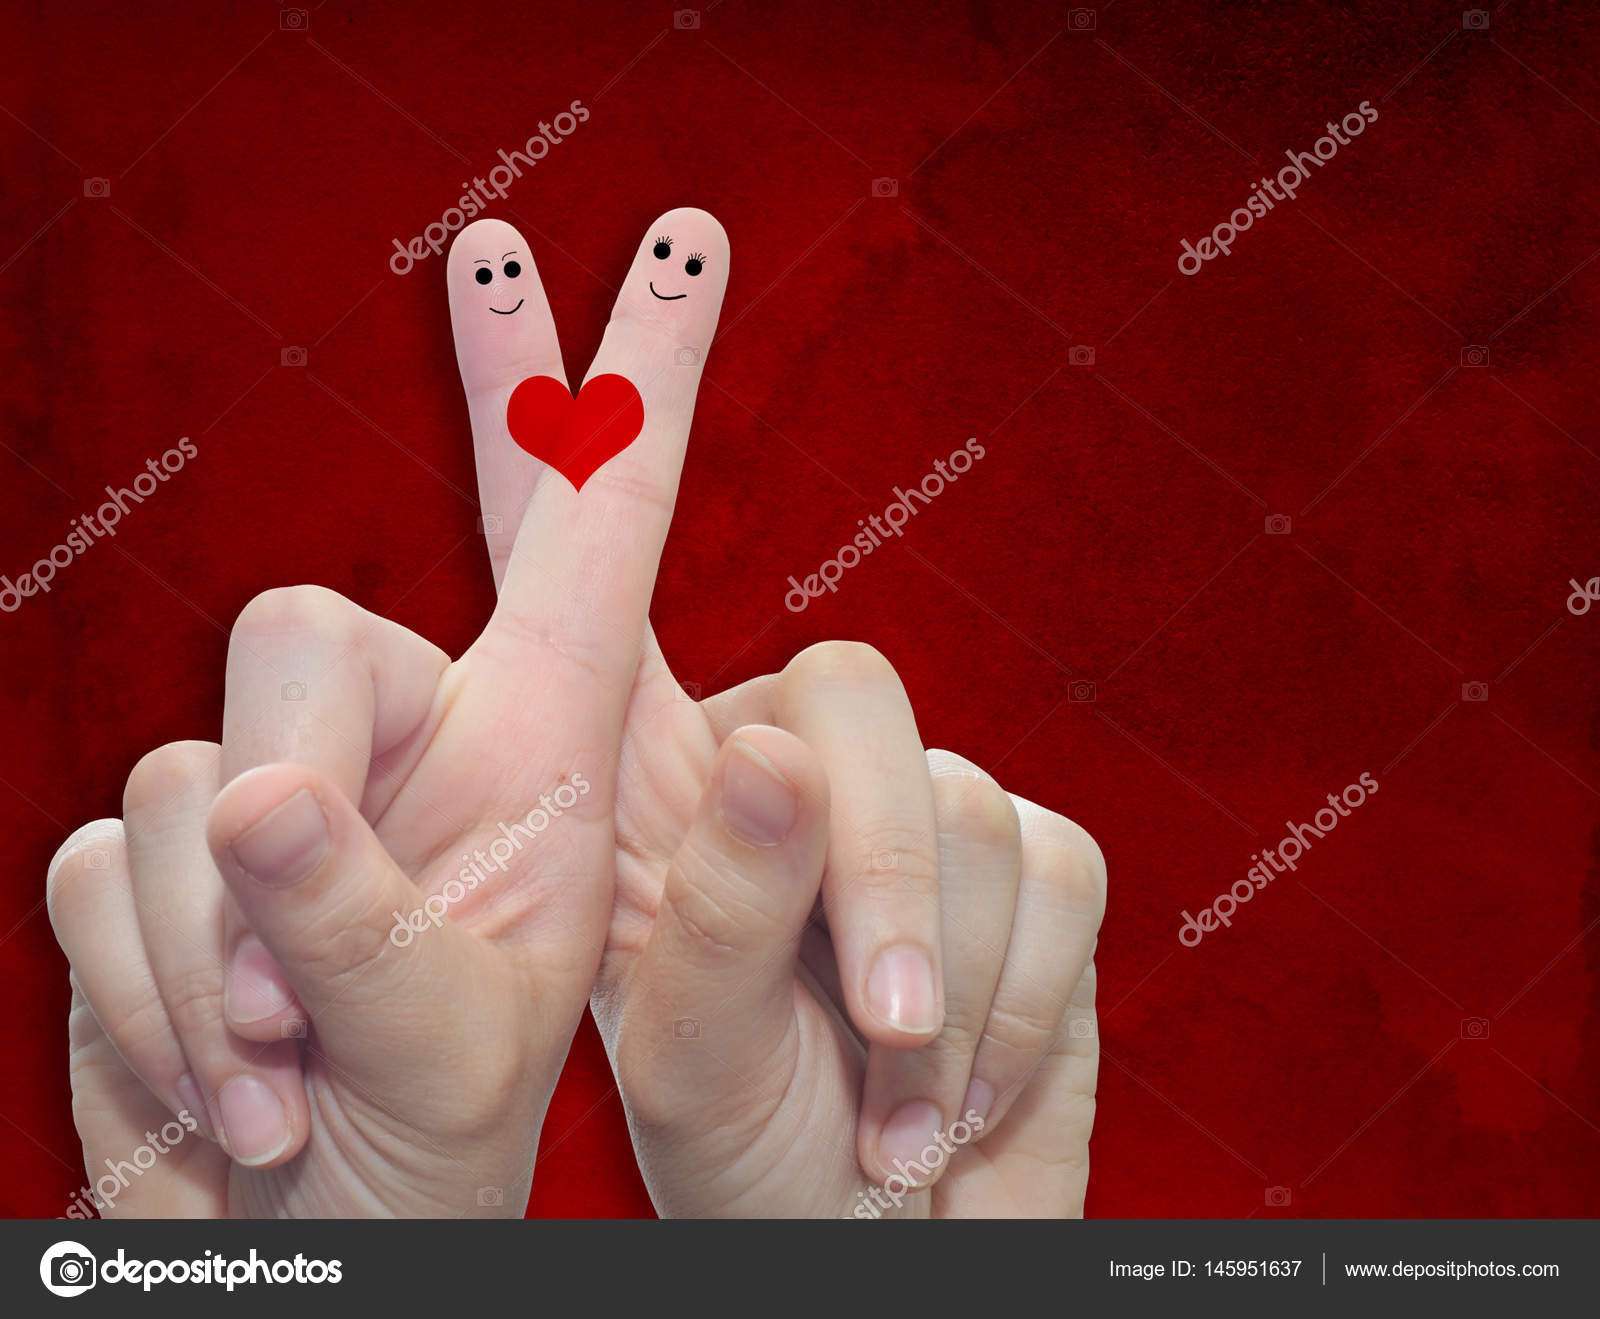 Fingers With Heart And Faces Stock Photo Design36 145951637